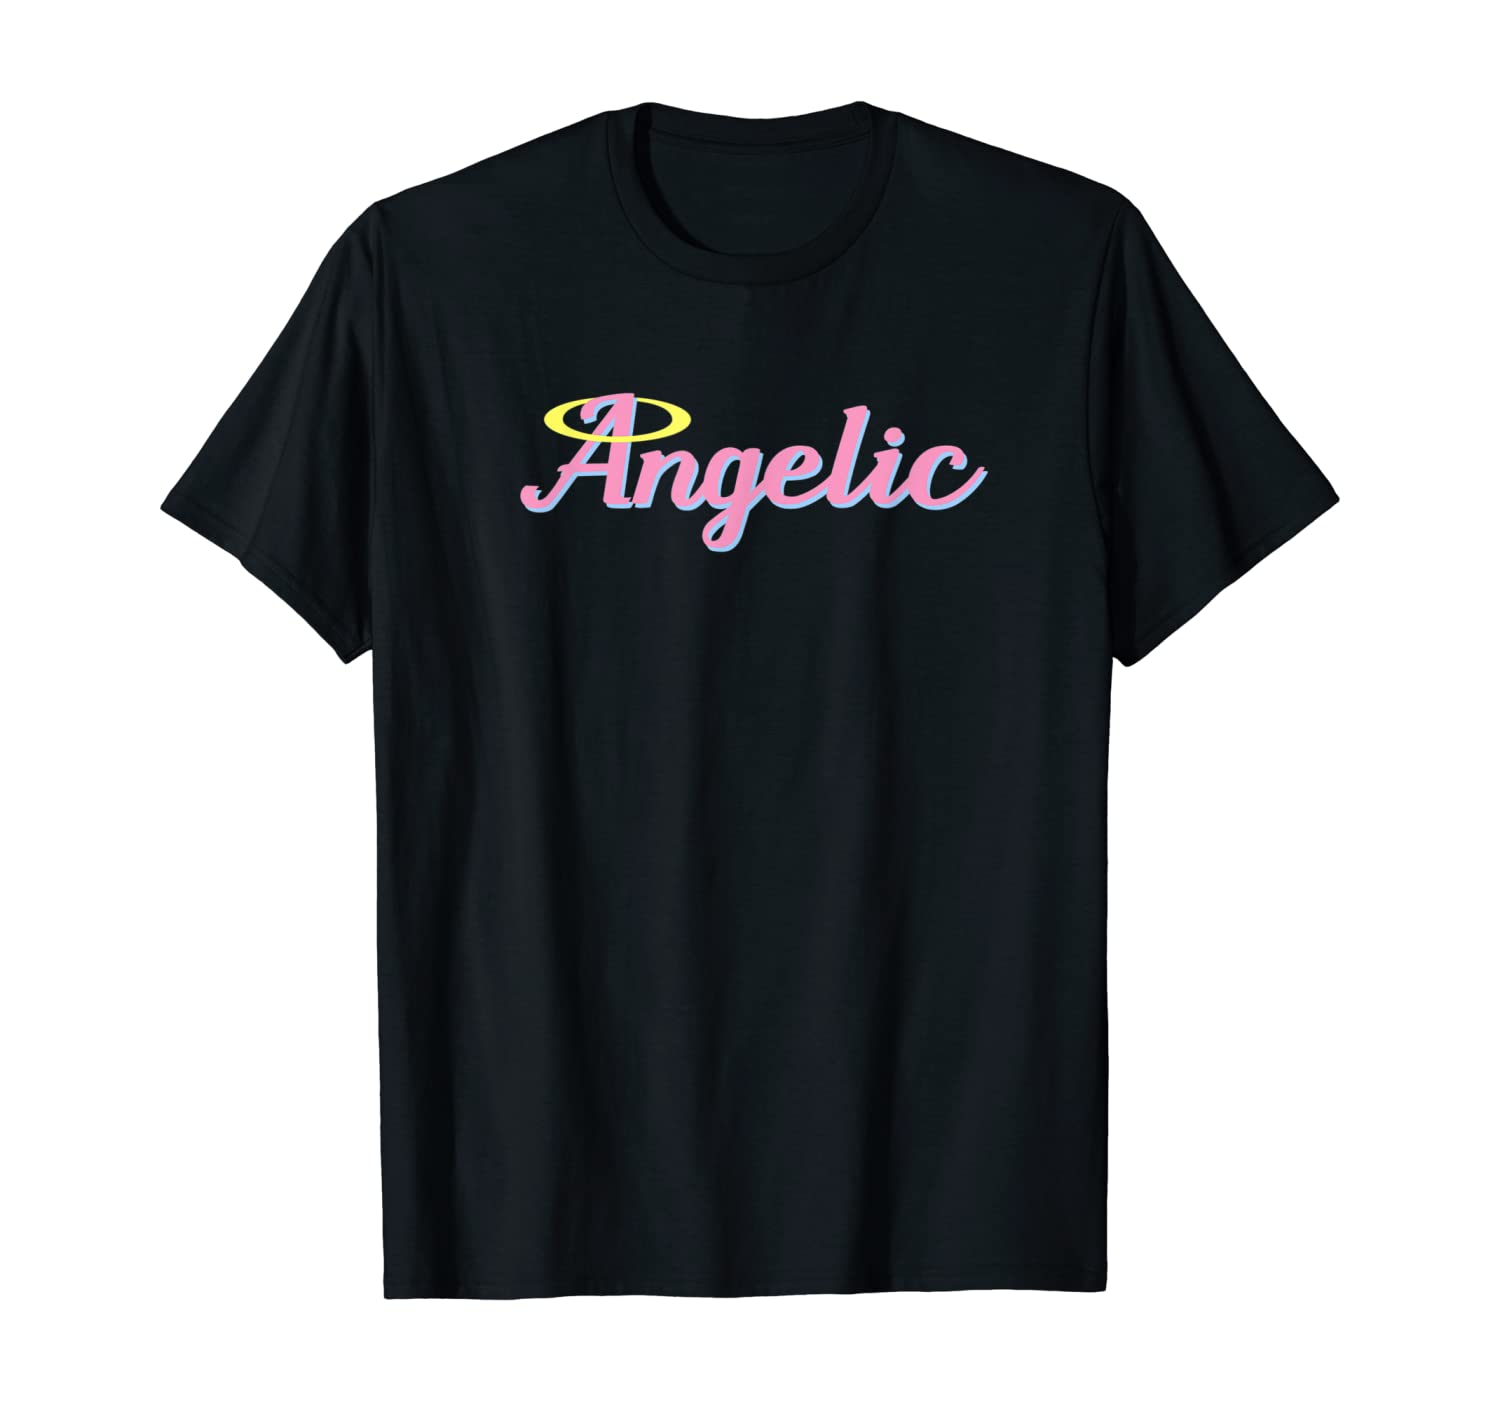 Angelic Aesthetic Soft Girl E-Girl Teen Girls Angel Women T-Shirt